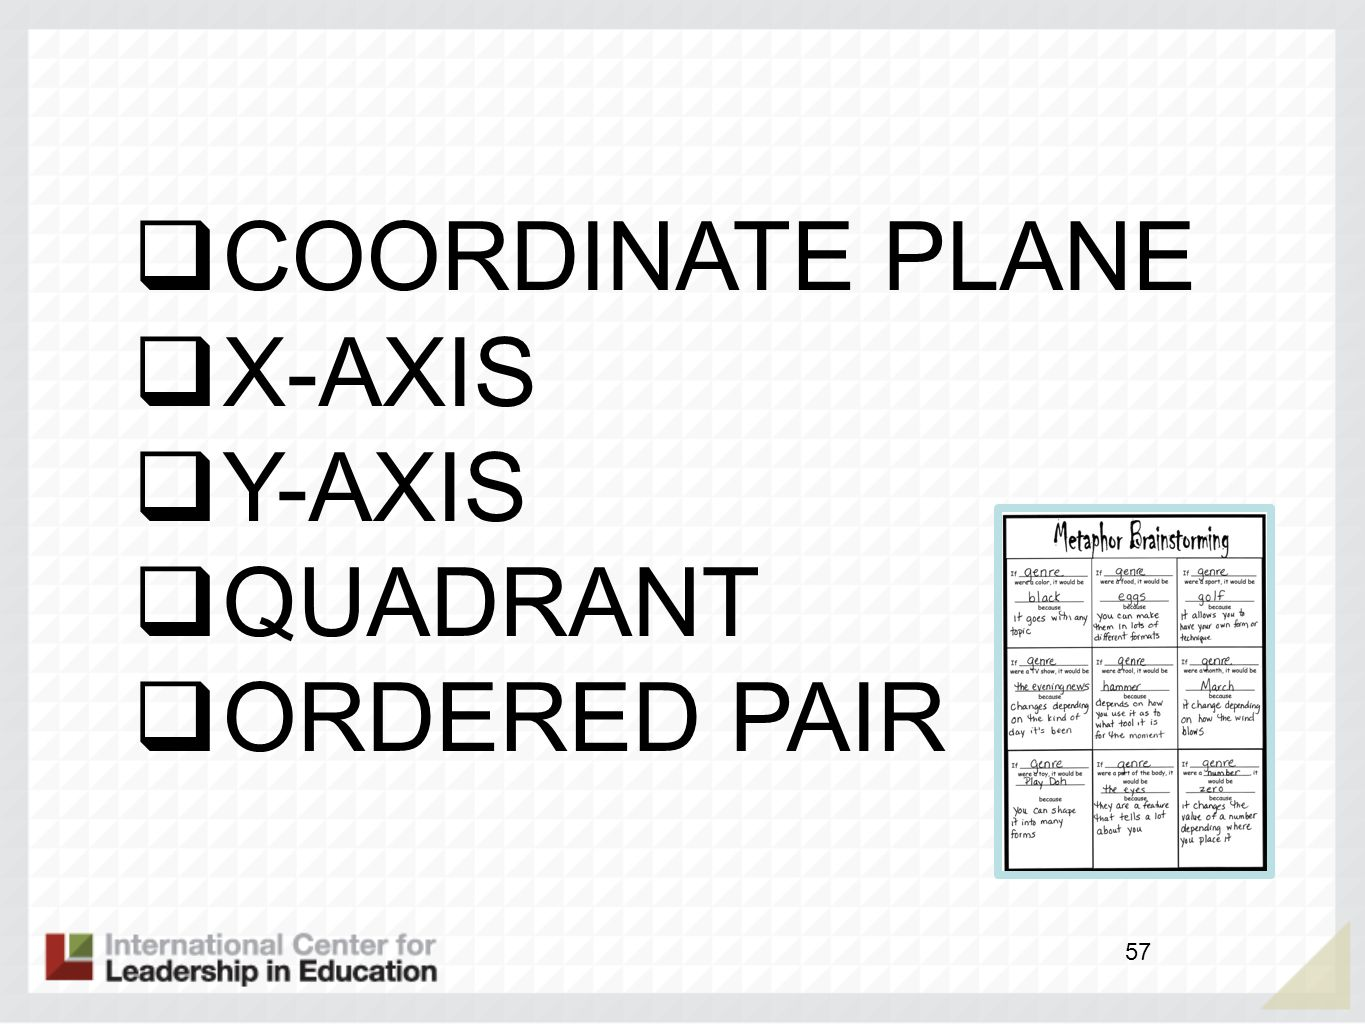 COORDINATE PLANE X-AXIS Y-AXIS QUADRANT ORDERED PAIR